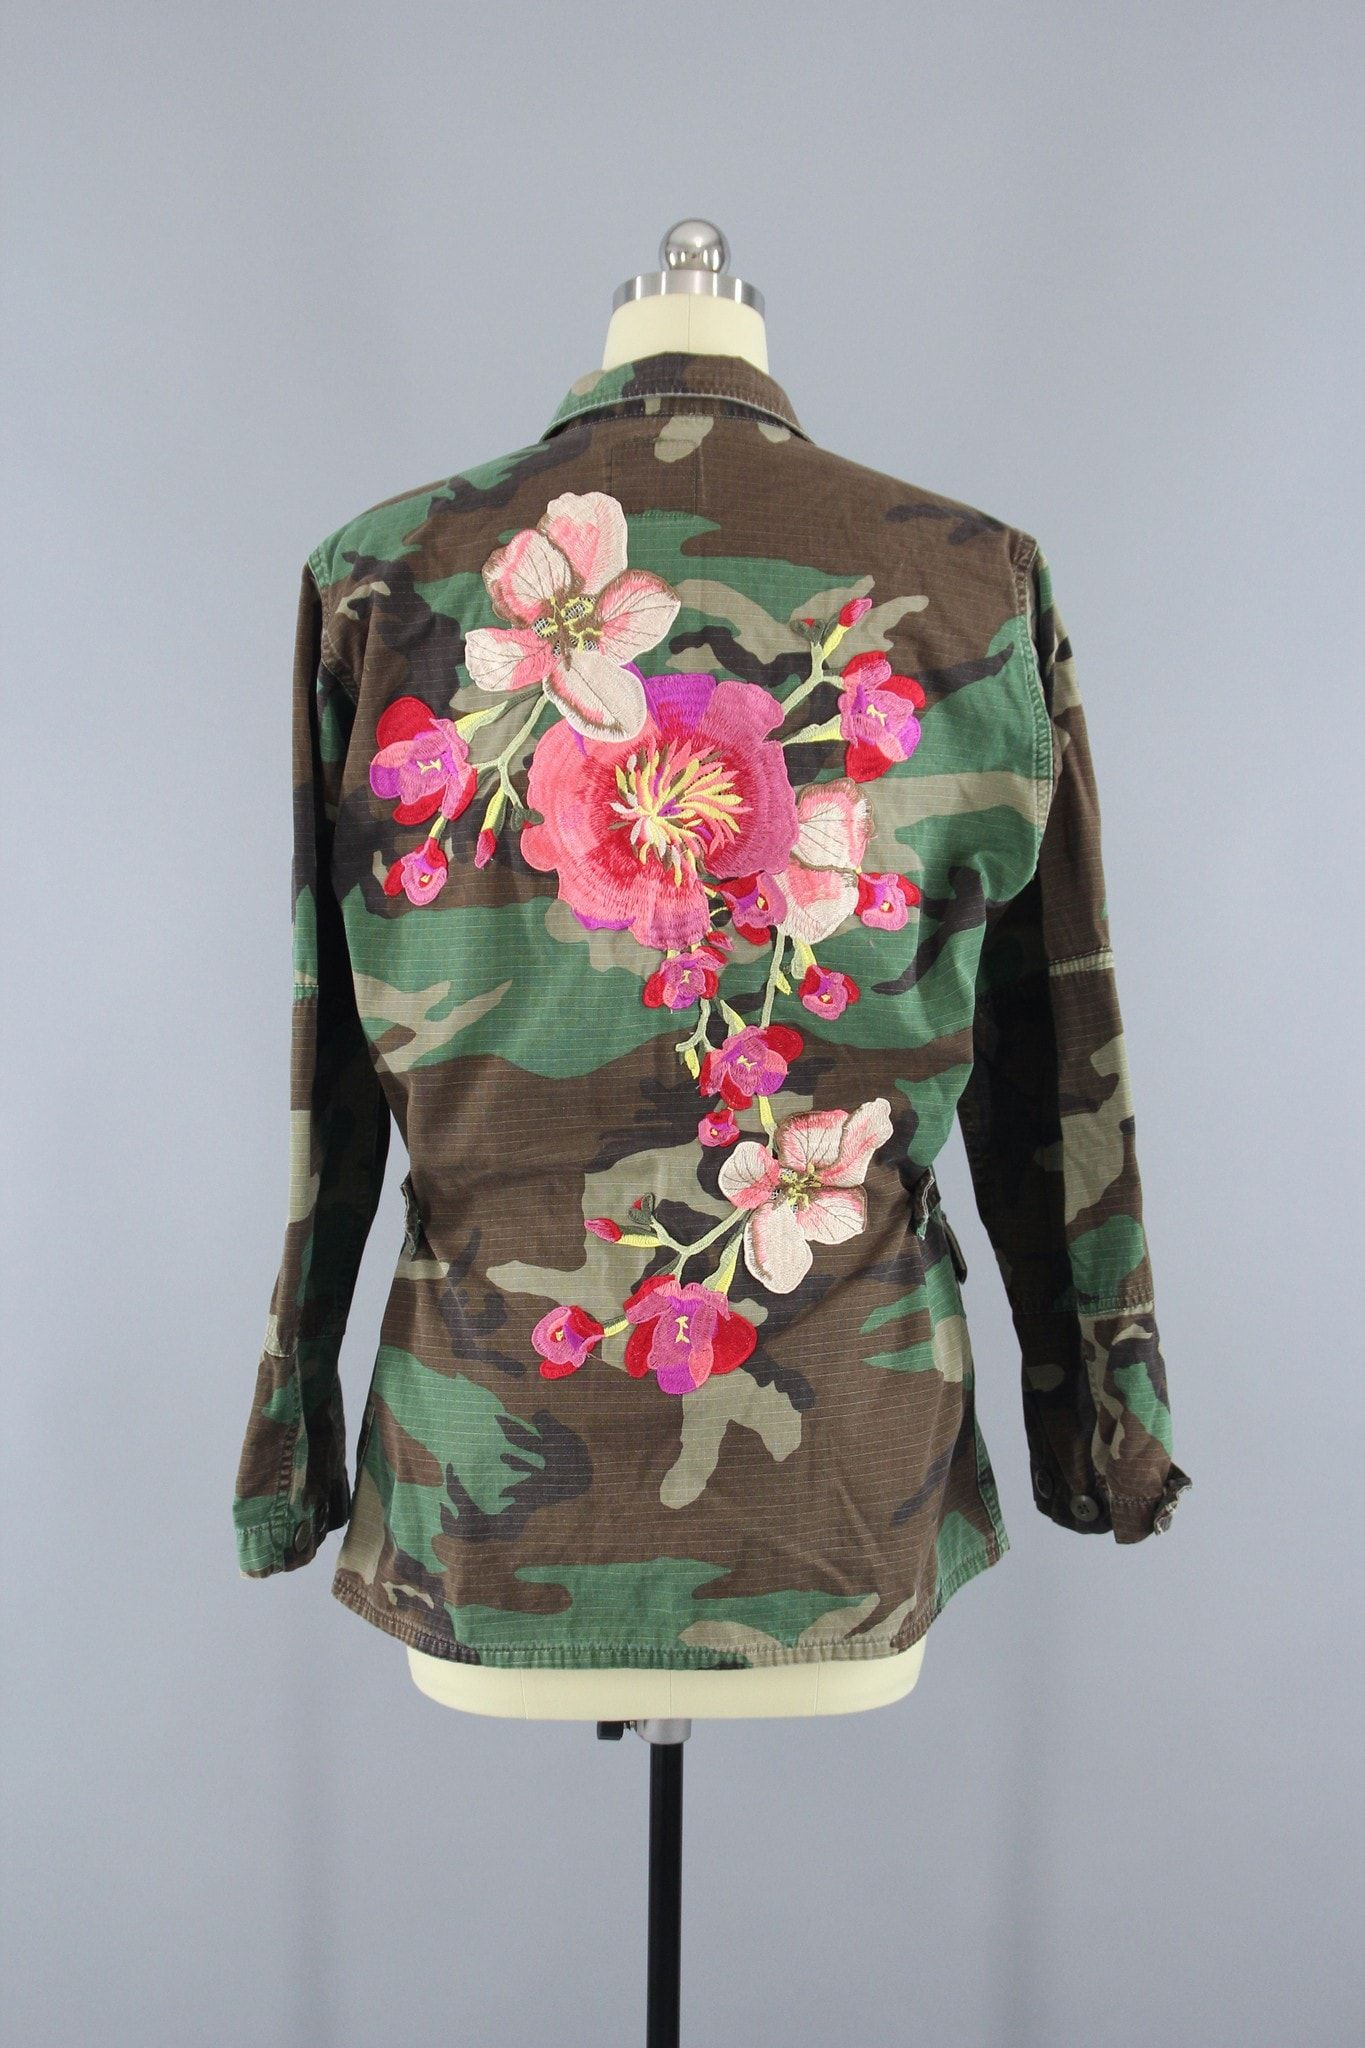 a04b0d0d7527 Vintage Army Camouflage Military Jacket with Large Peach Pink Floral  Embroidery